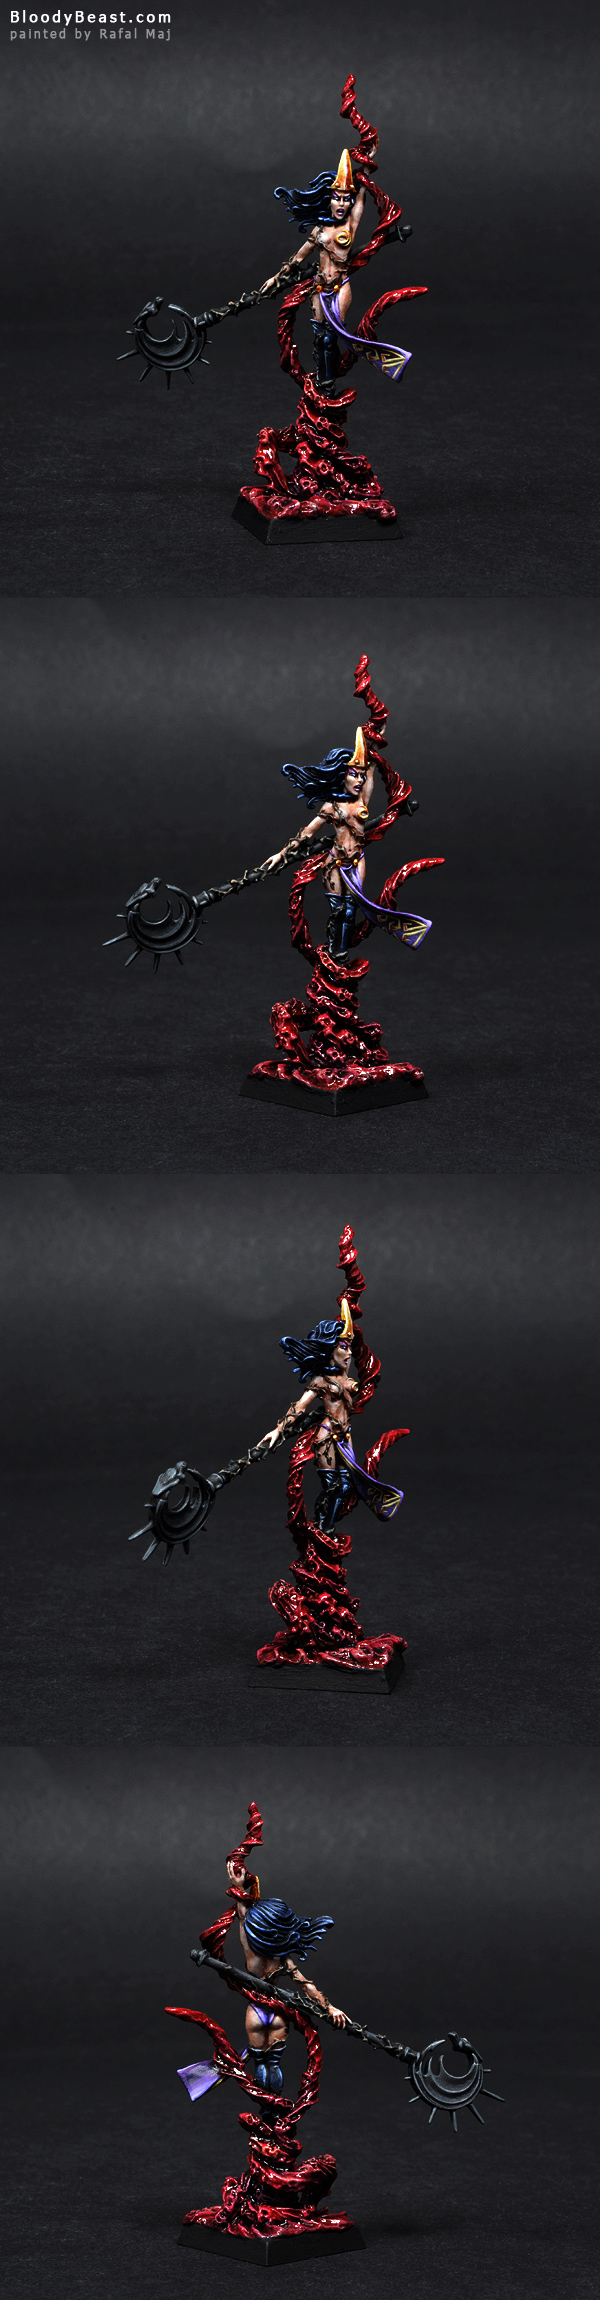 Dark Elves Supreme Sorceress painted by Rafal Maj (BloodyBeast.com)